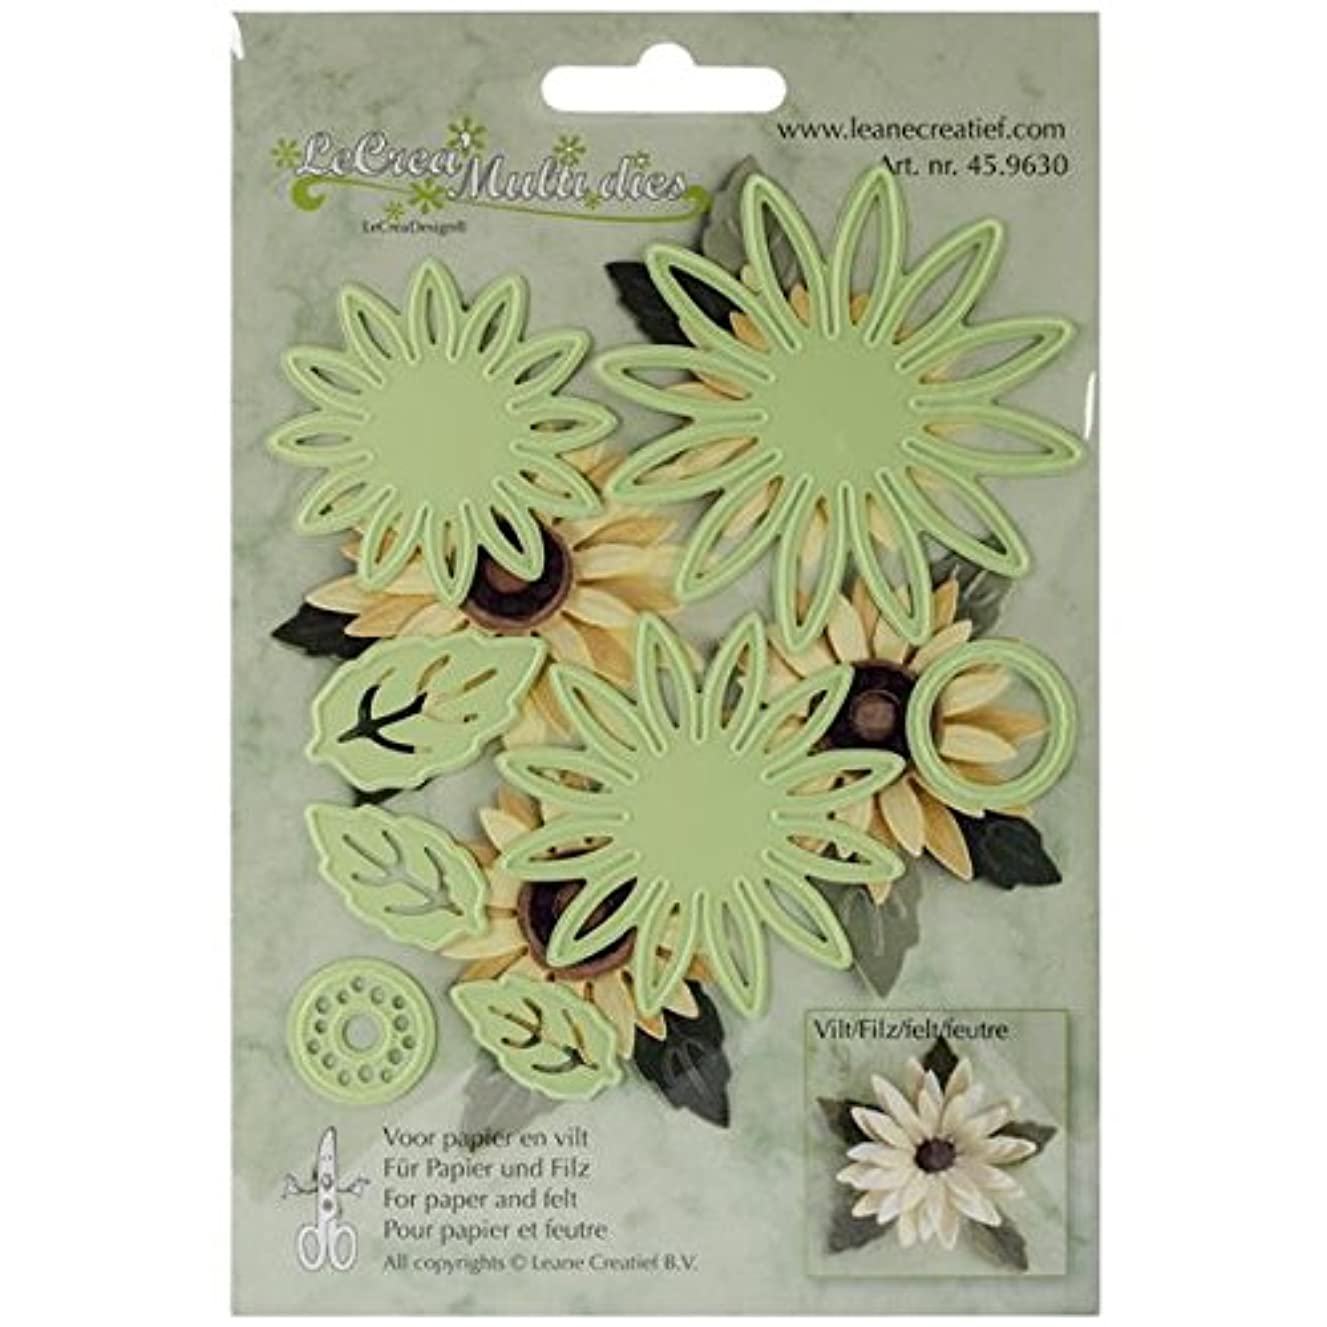 Ecstasy Crafts Cut and Emboss Dies, Daisy Flower and Leaves, Up to 2.625-Inch